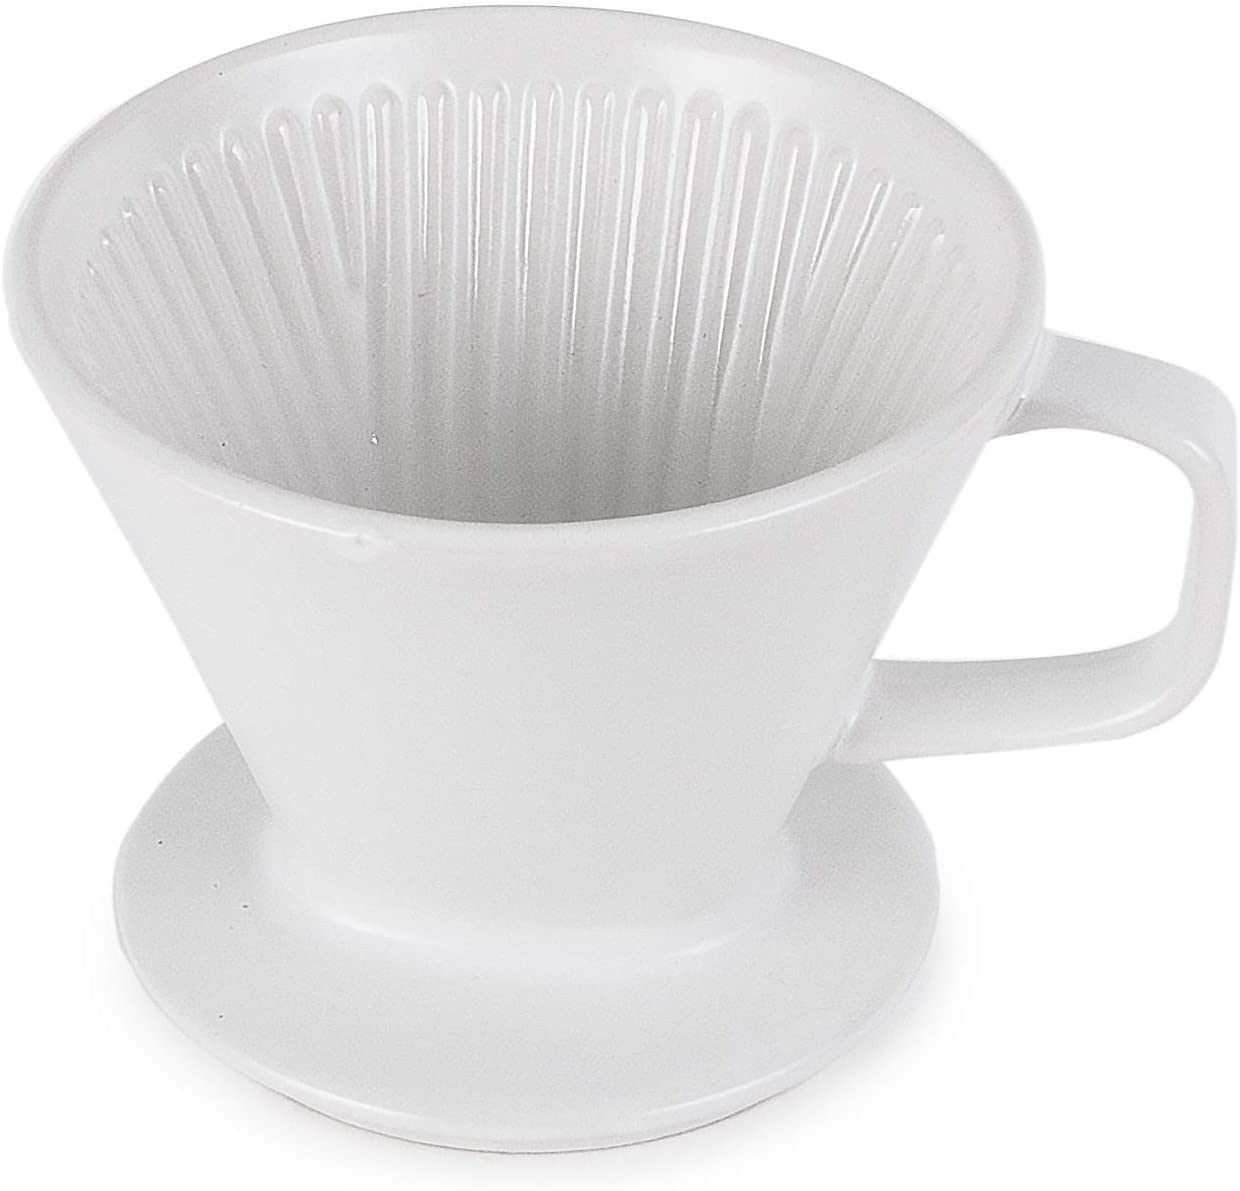 Hinomaru Collection Porcelain Pour Over Coffee Brewing Coffee Filter Cup Reusable Coffee Dripper Filter Portable Daily Coffee Maker for Coffee Enthusiast & At-home Baristas (White Coffee Filter)